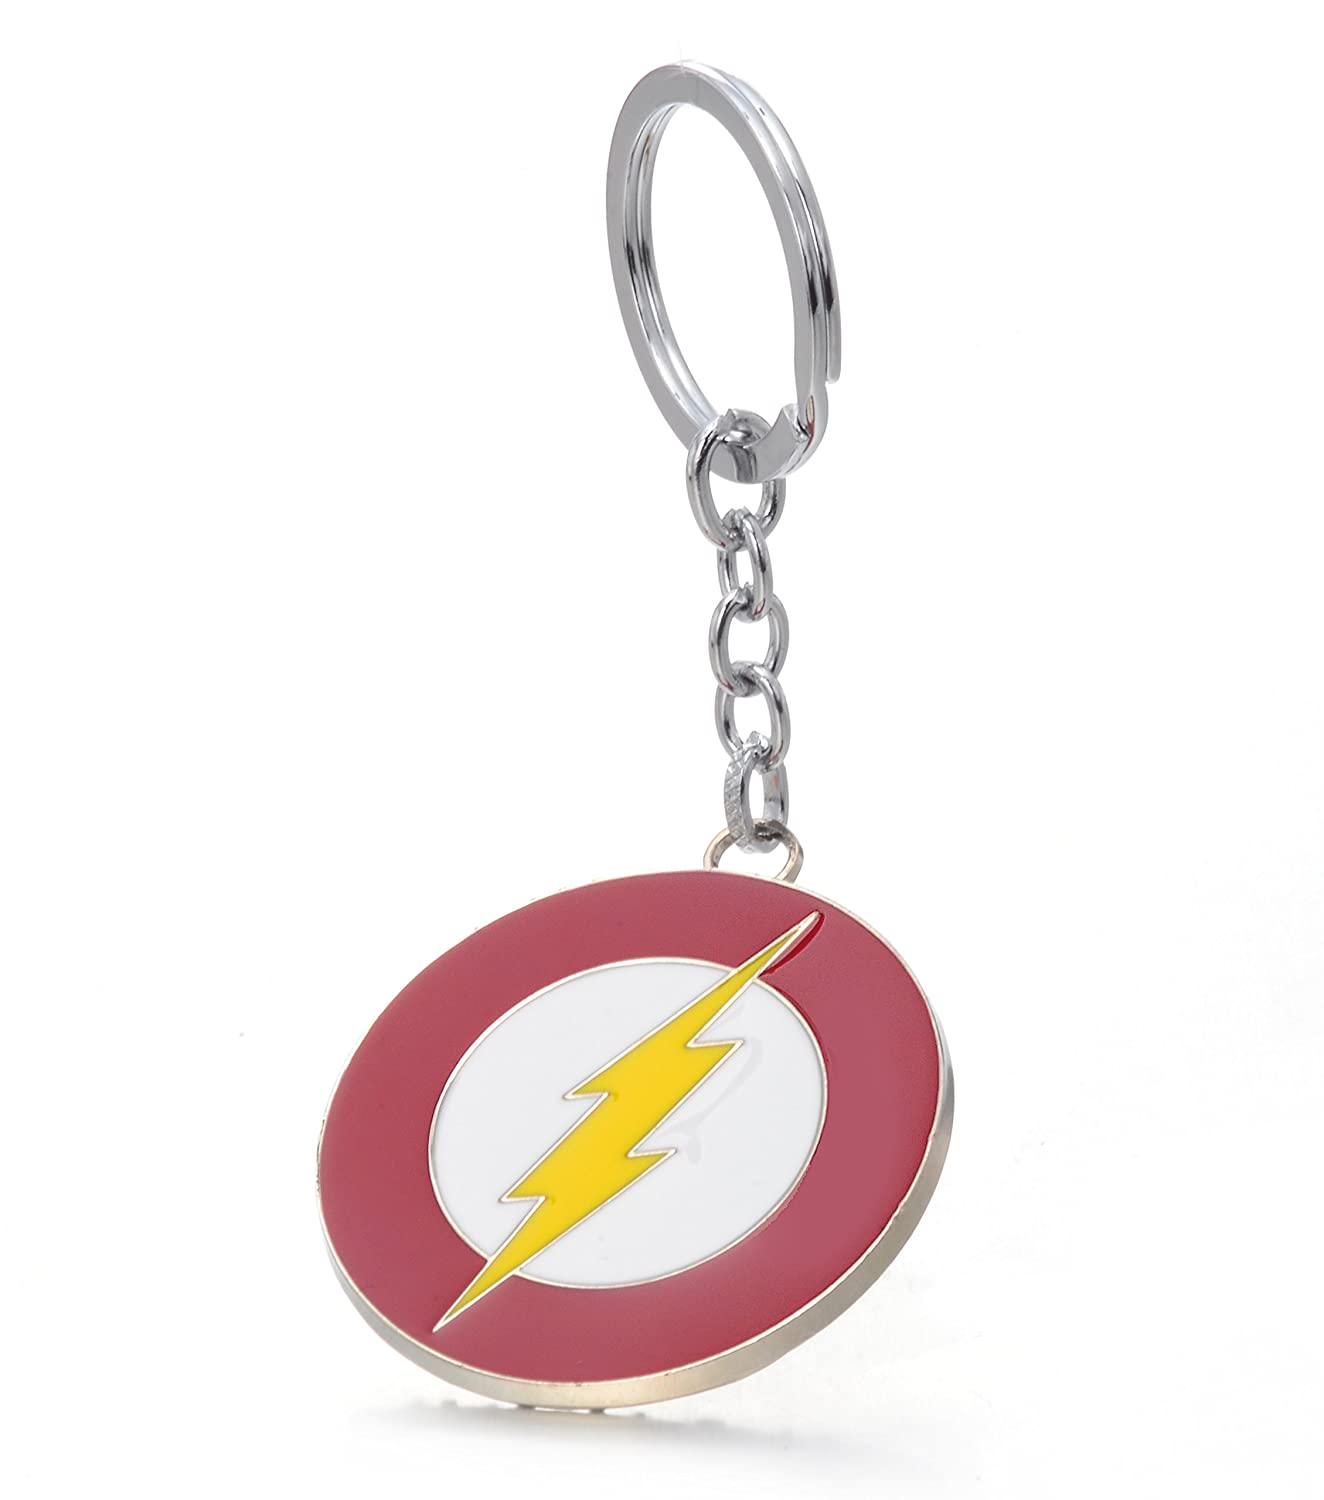 How to flash a keychain